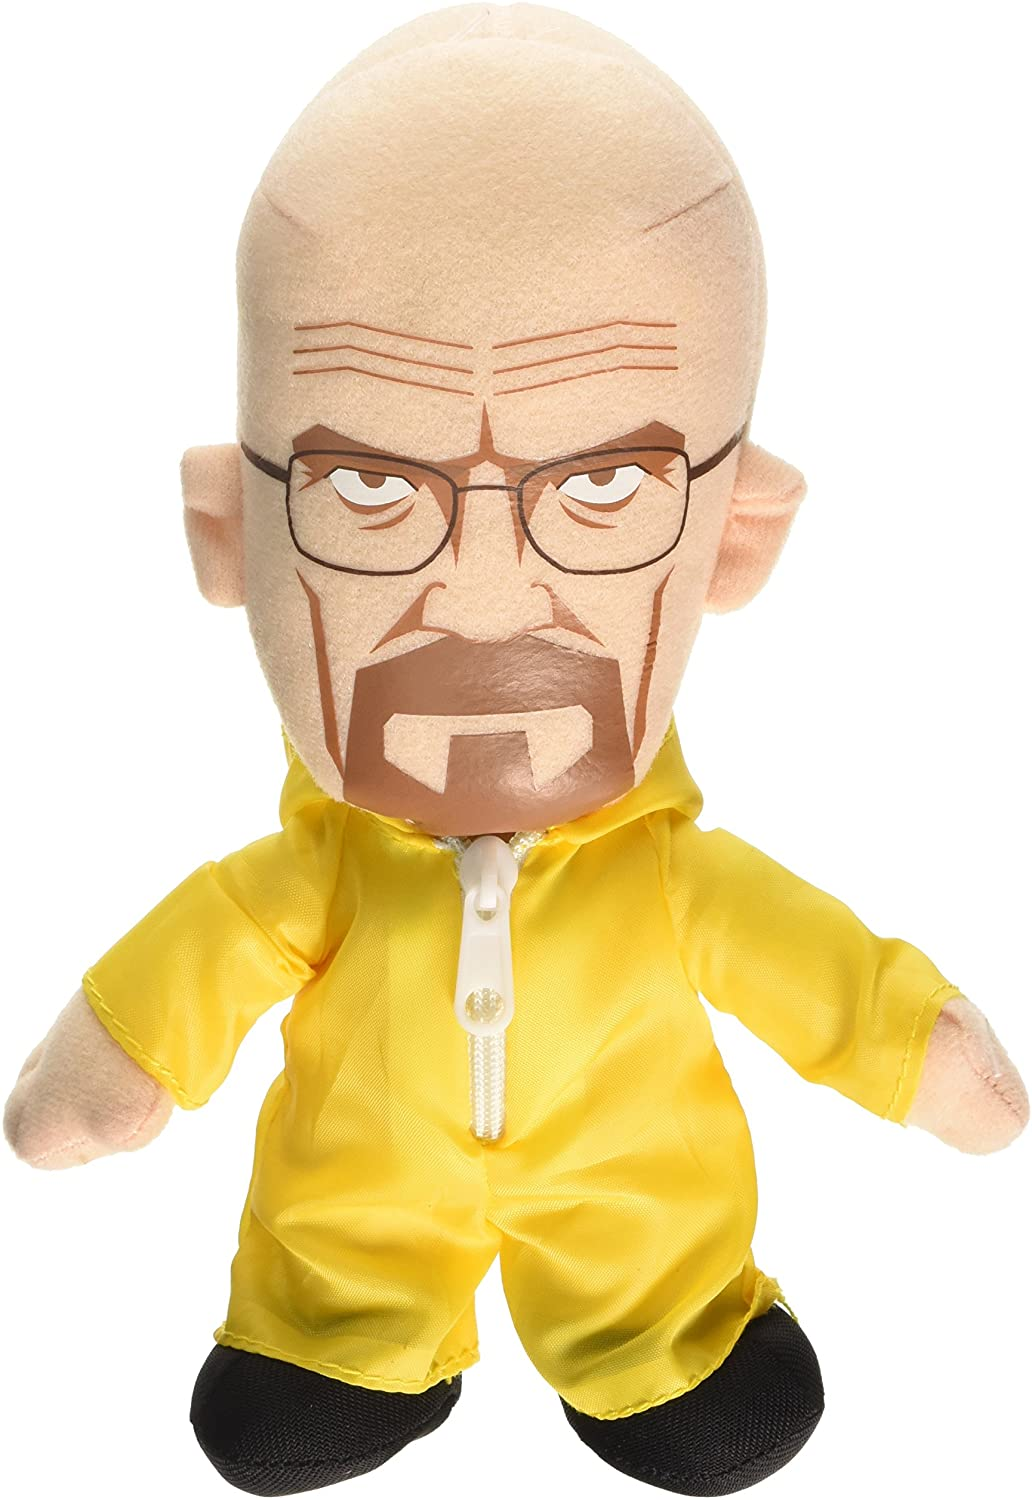 Walter White Hazmat Suit Plush Toy